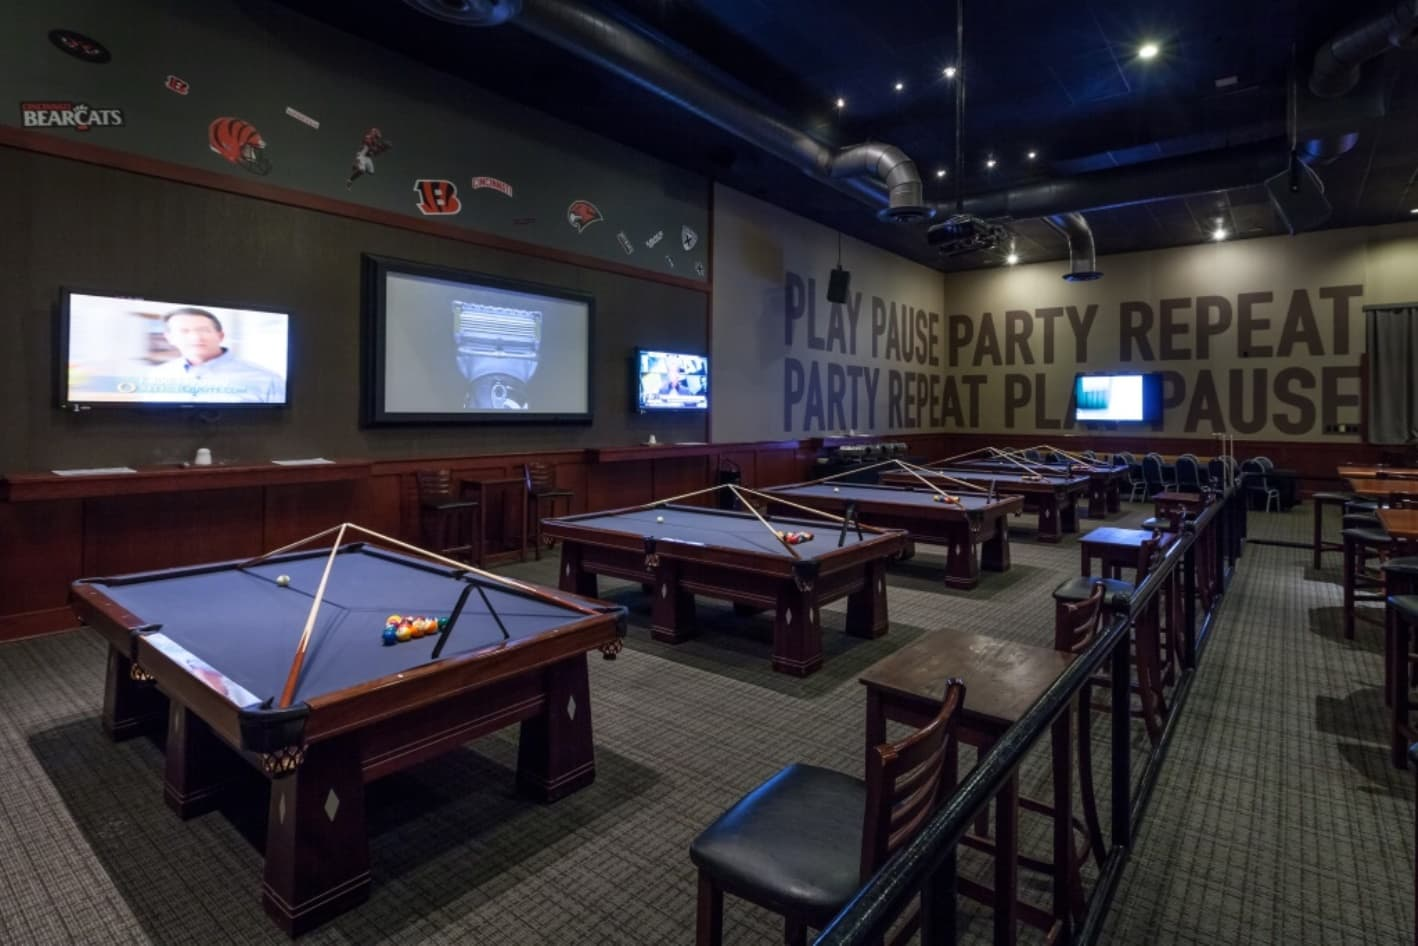 Billiards at the Springdale location